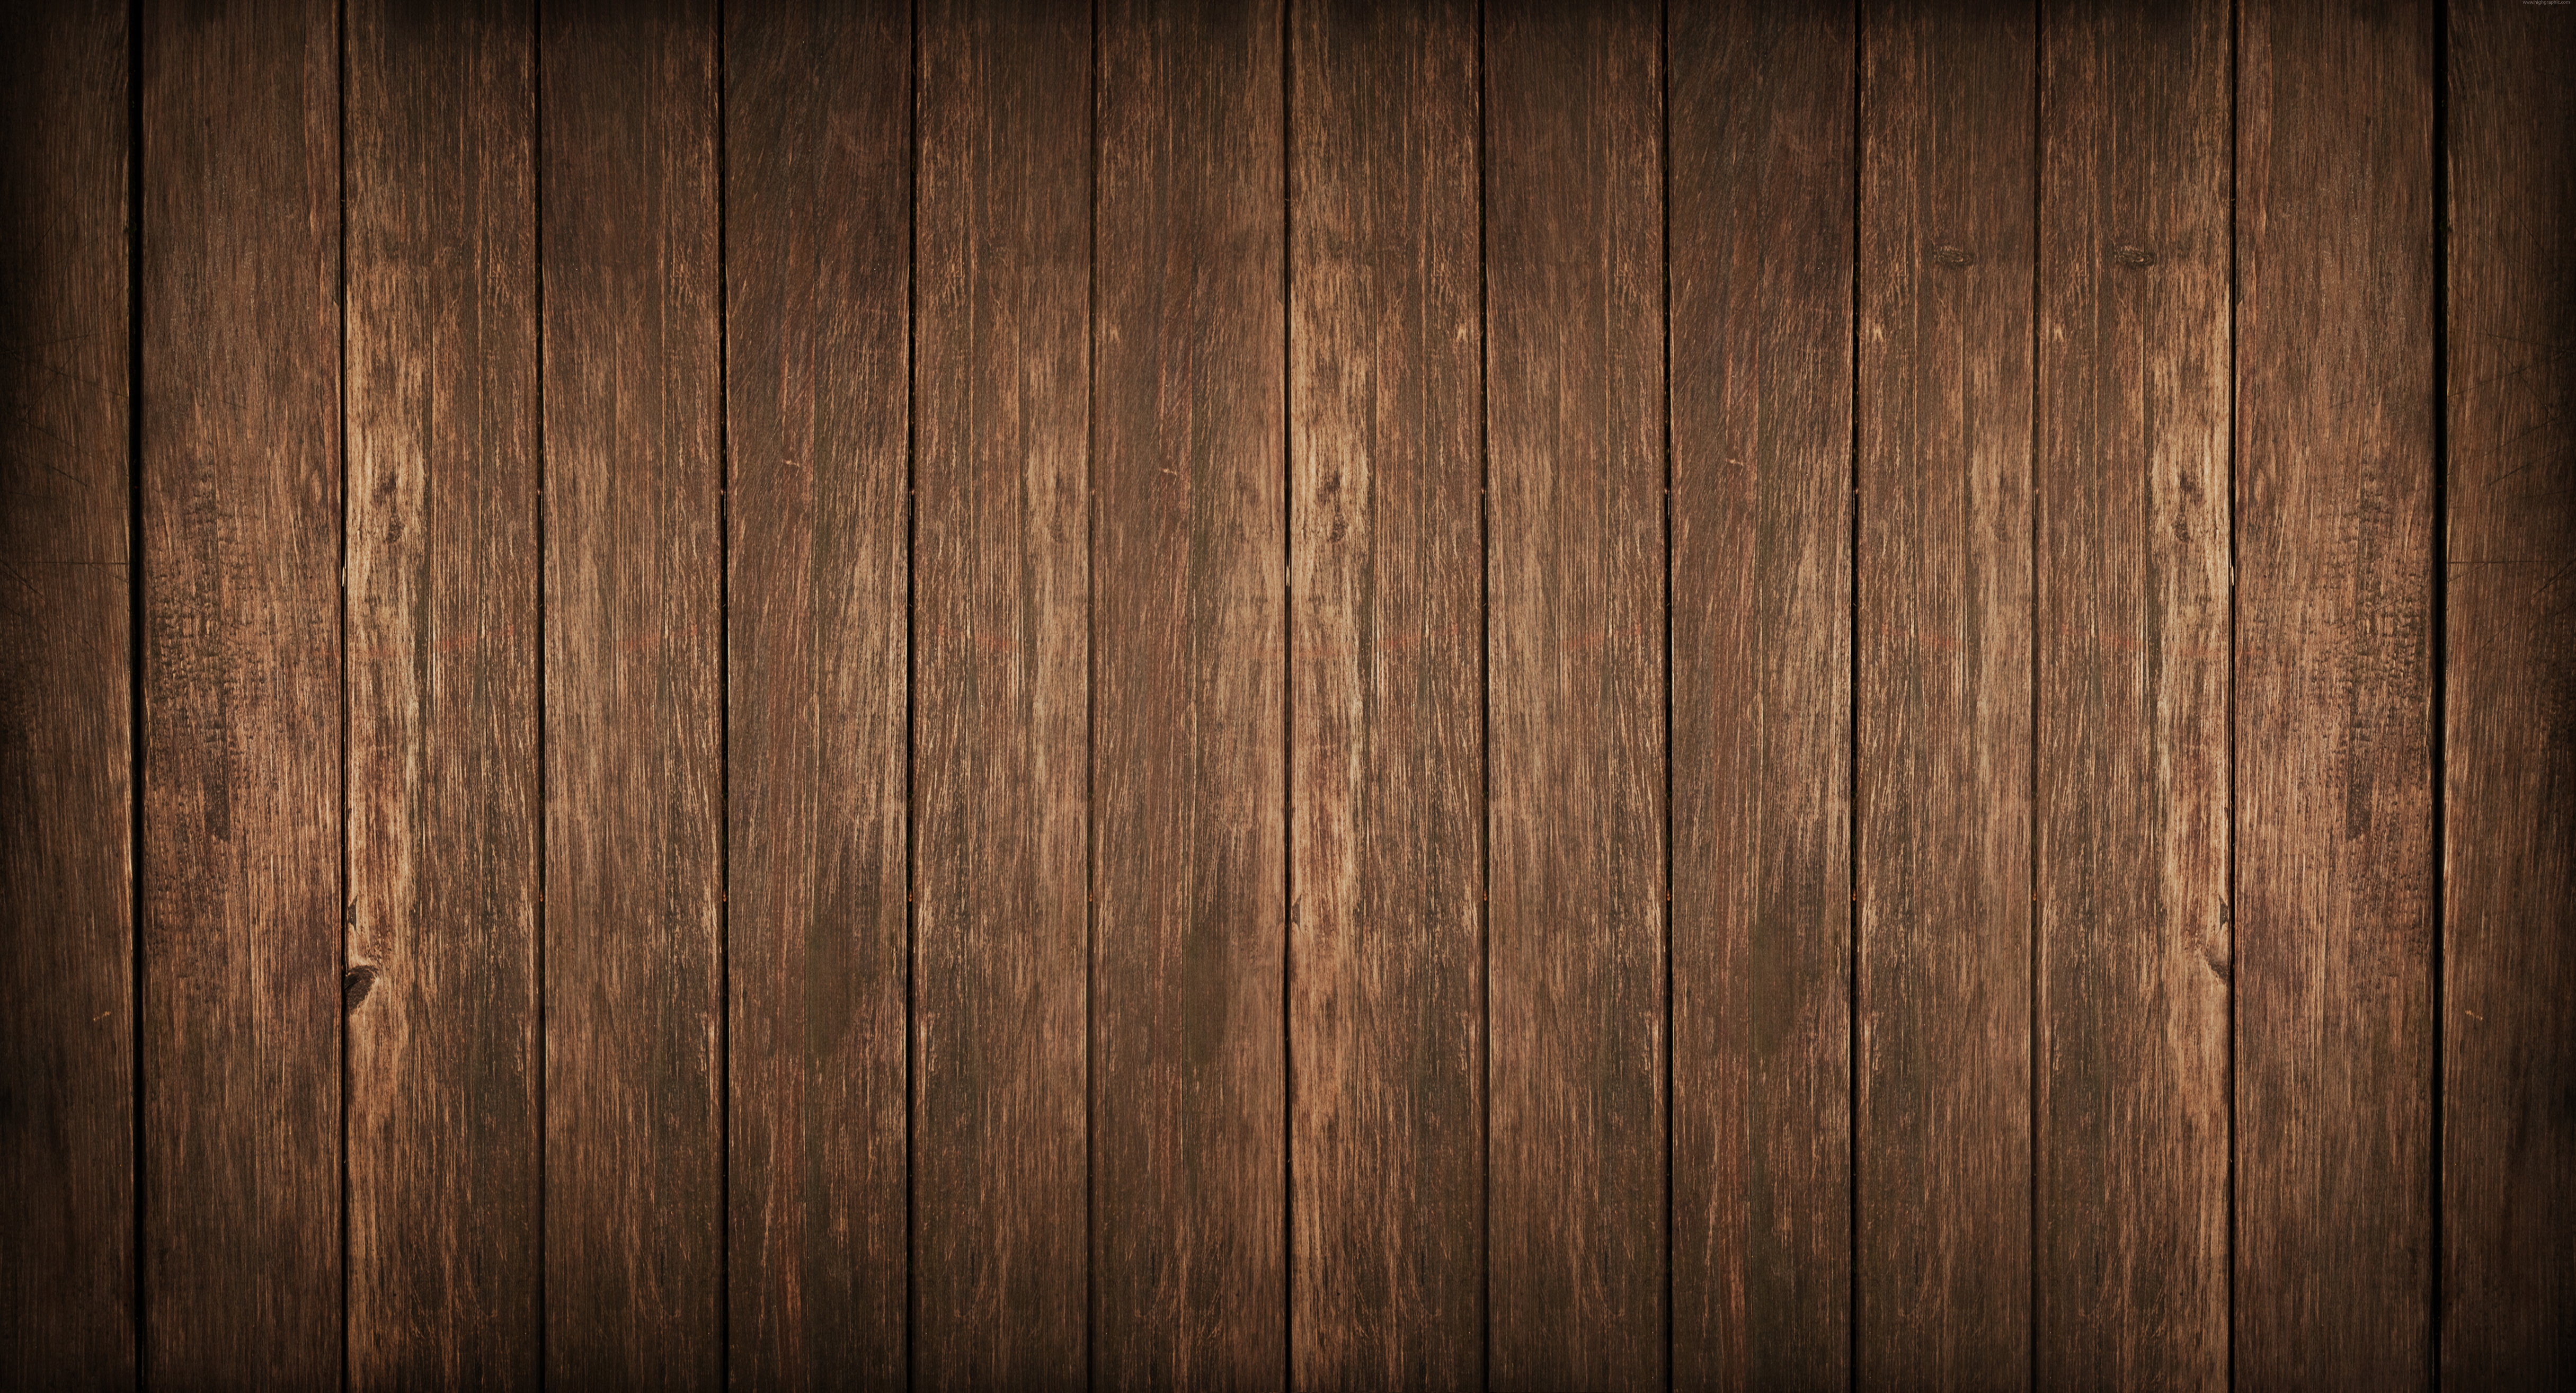 Free Photo Wood Panels Background